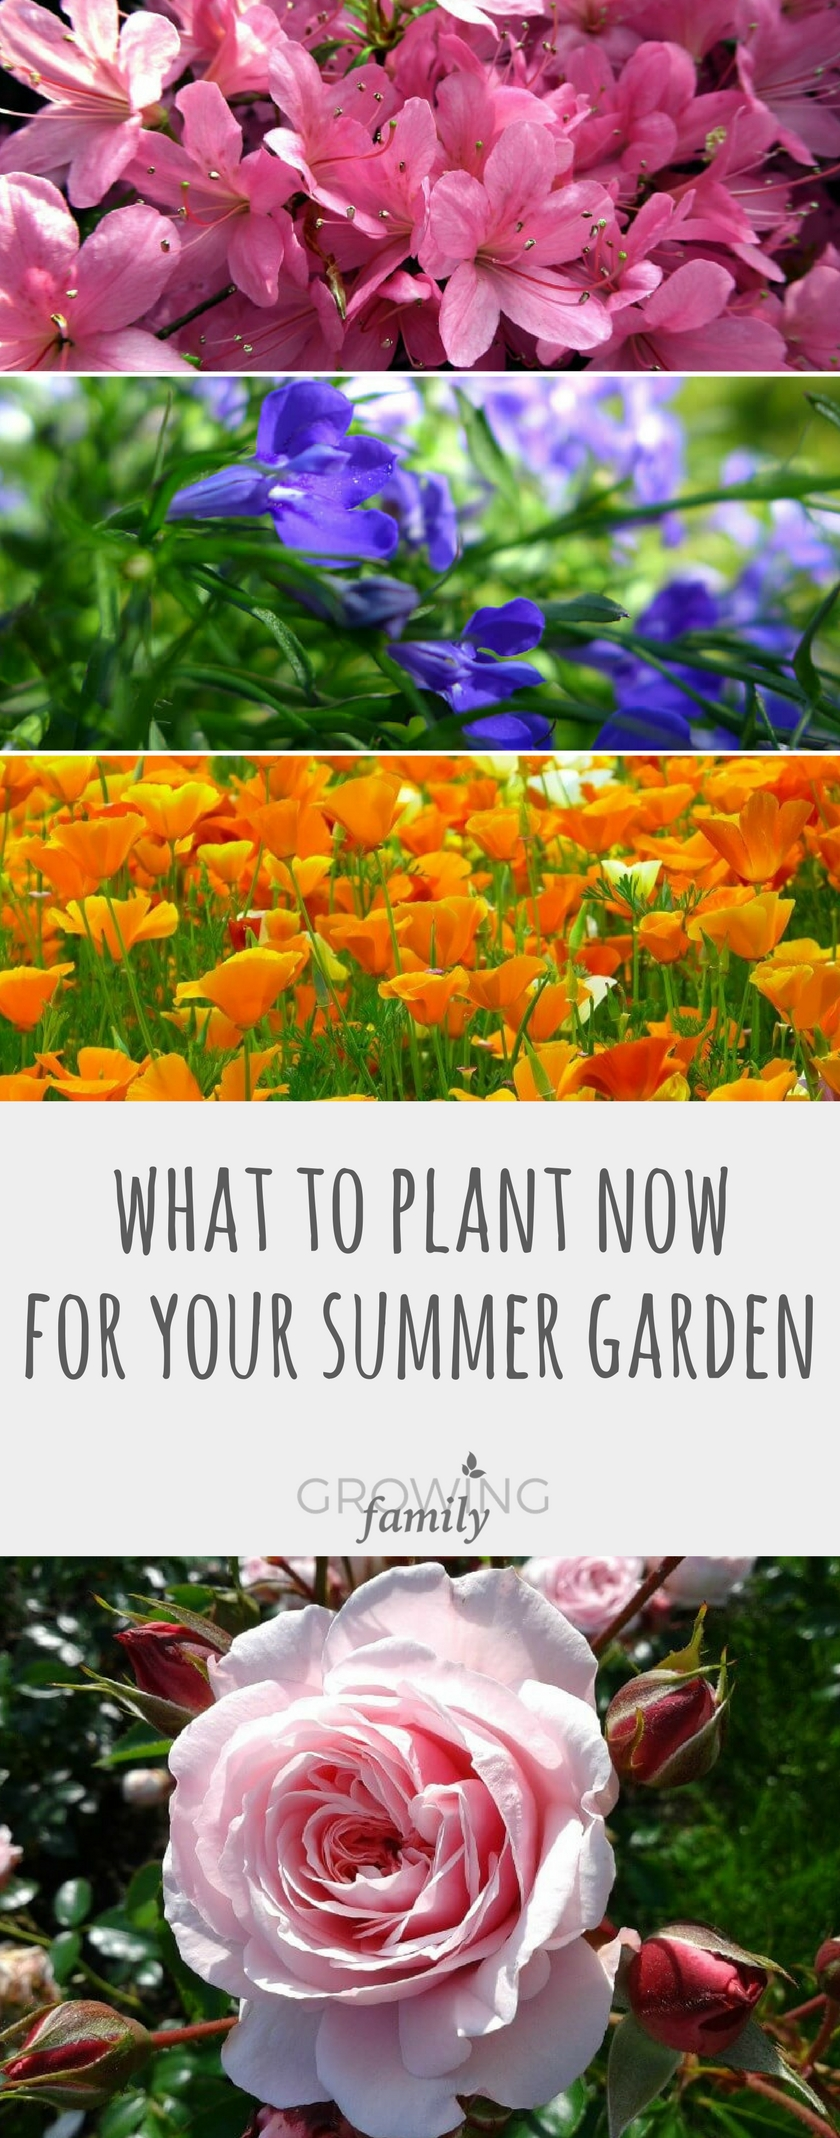 Plan For Your Summer Garden By Sowing Seeds And Introducing Hardy Plants In  Late Winter.